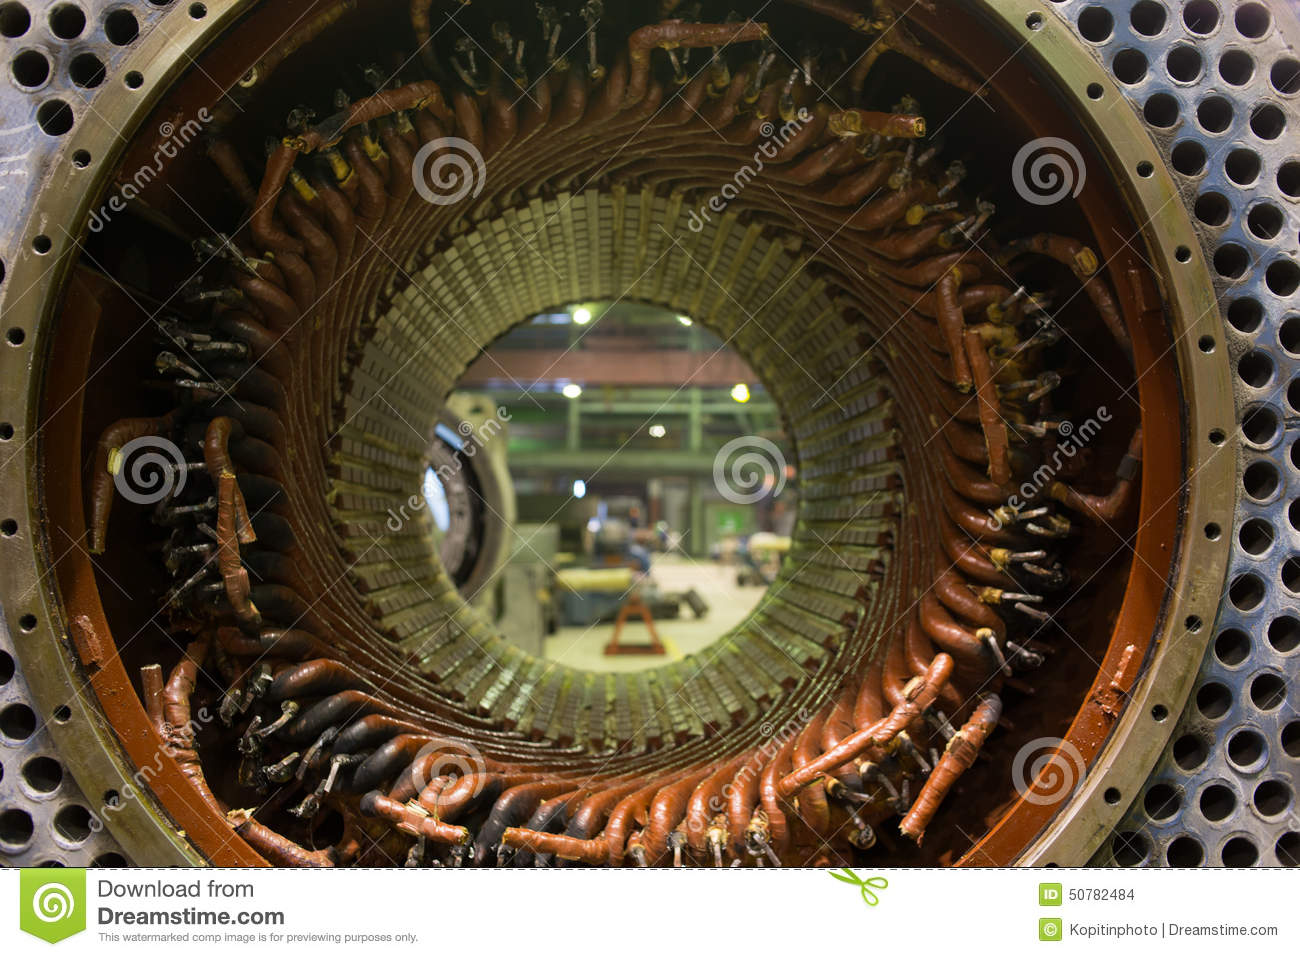 Stator Of A Big Electric Motor Stock Photo Image 50782484